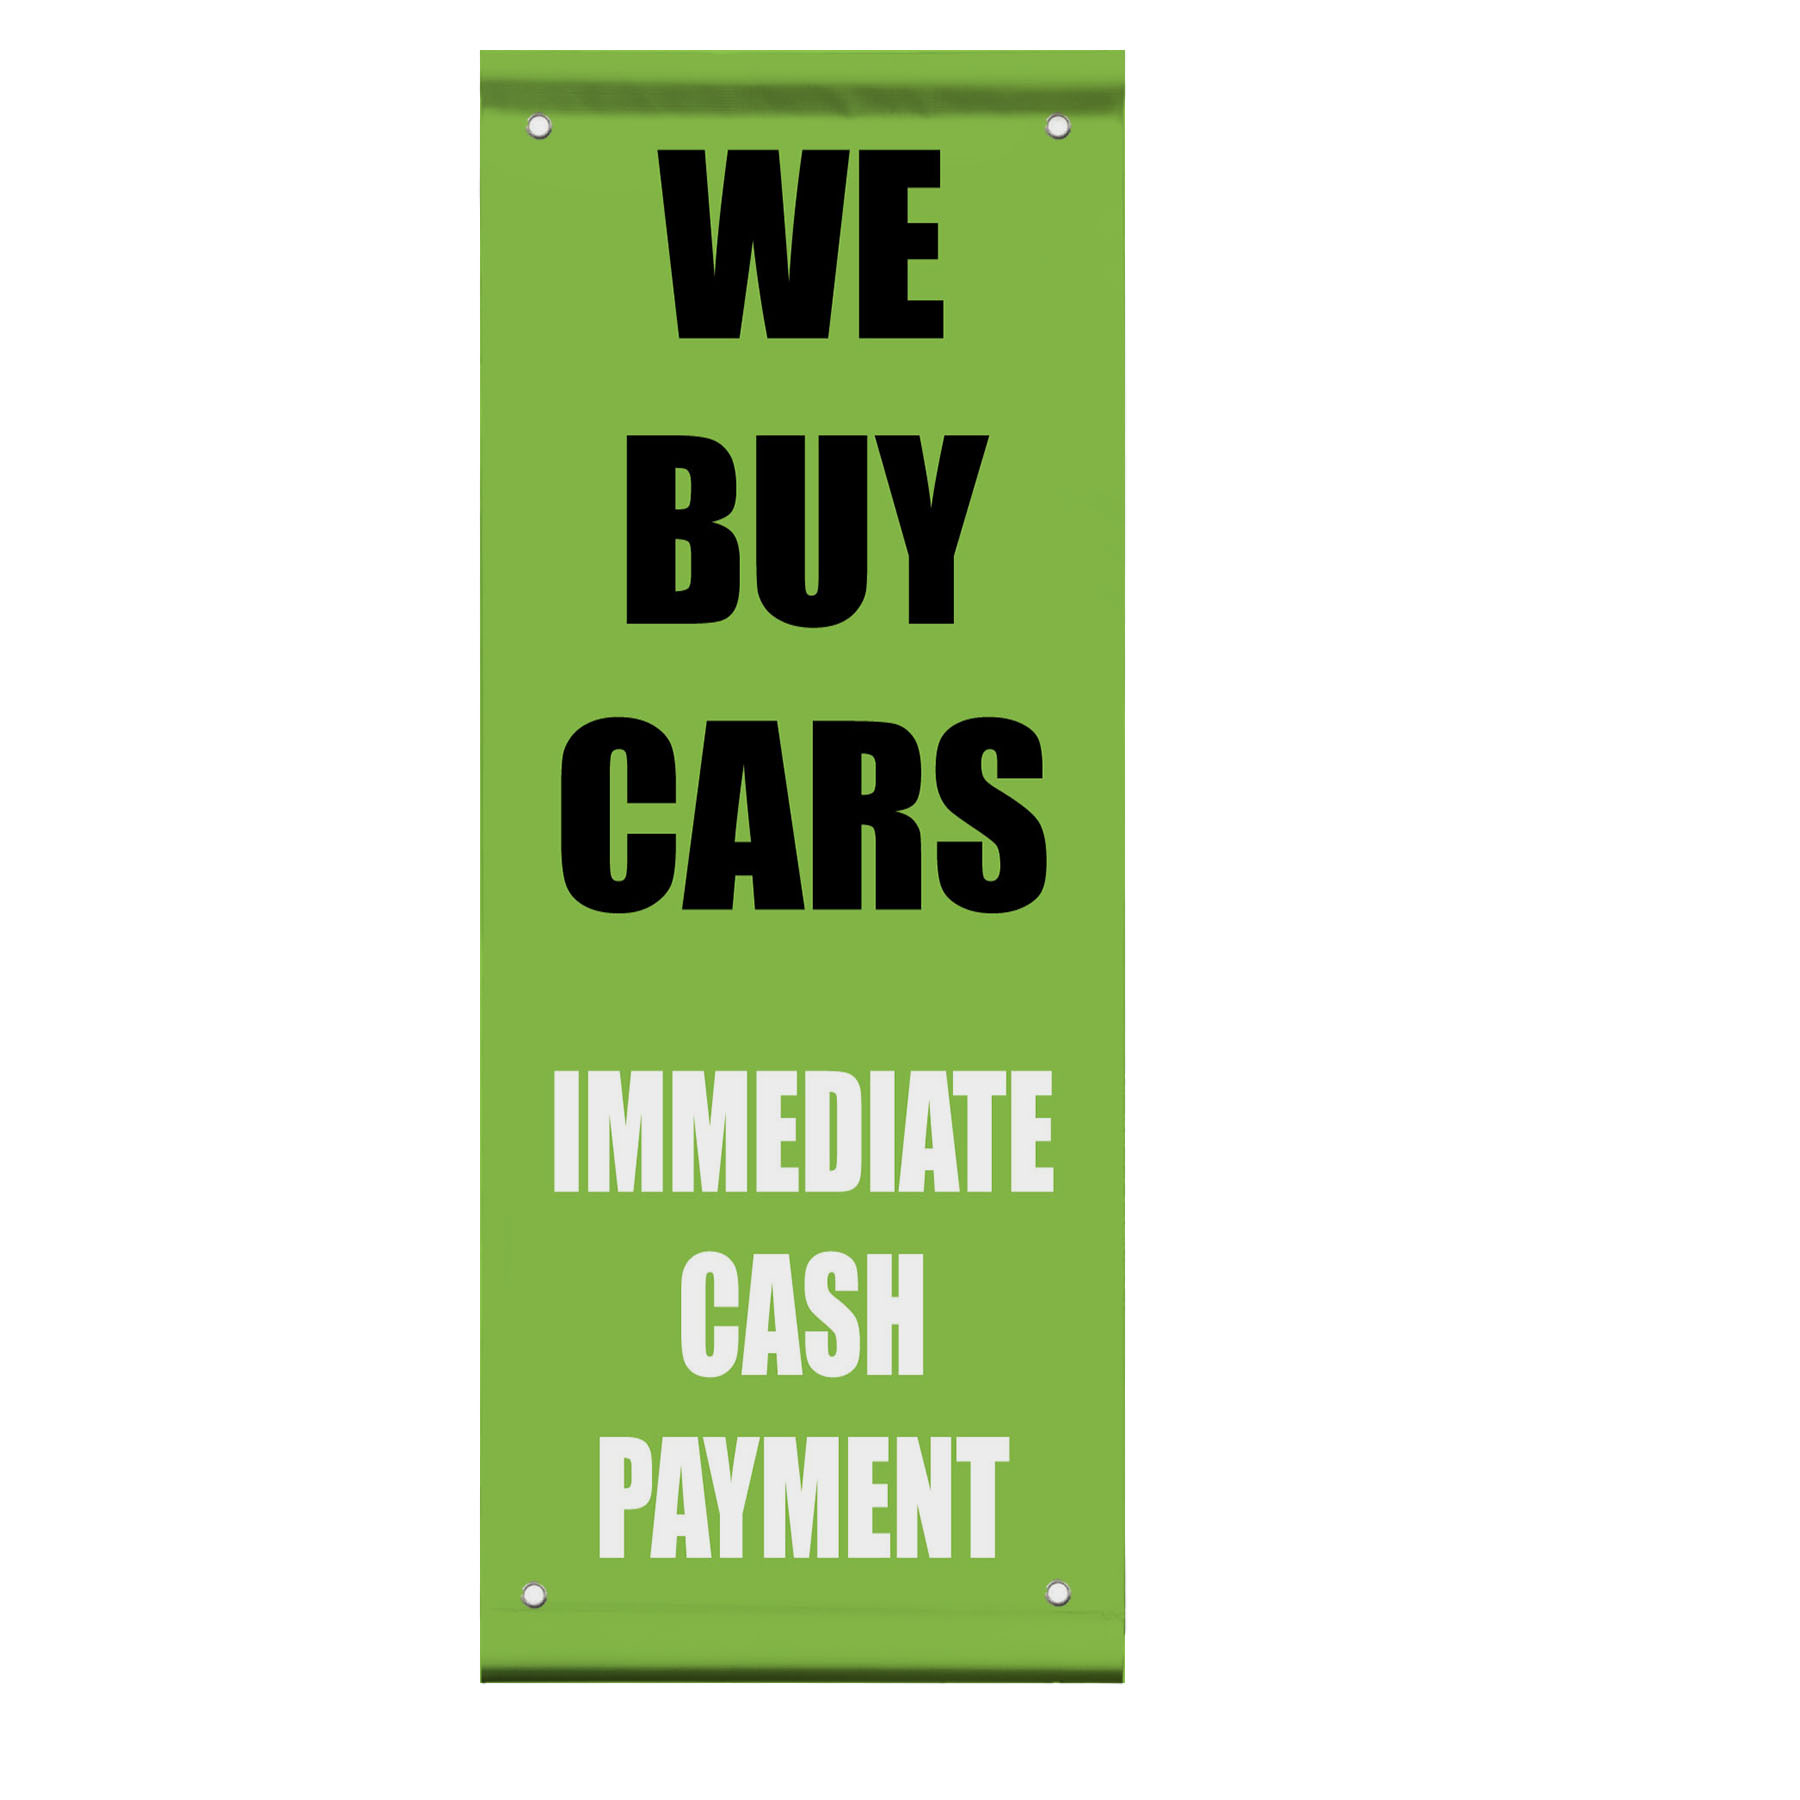 We Buy Cars Immediate Cash Payment Double Sided Vertical